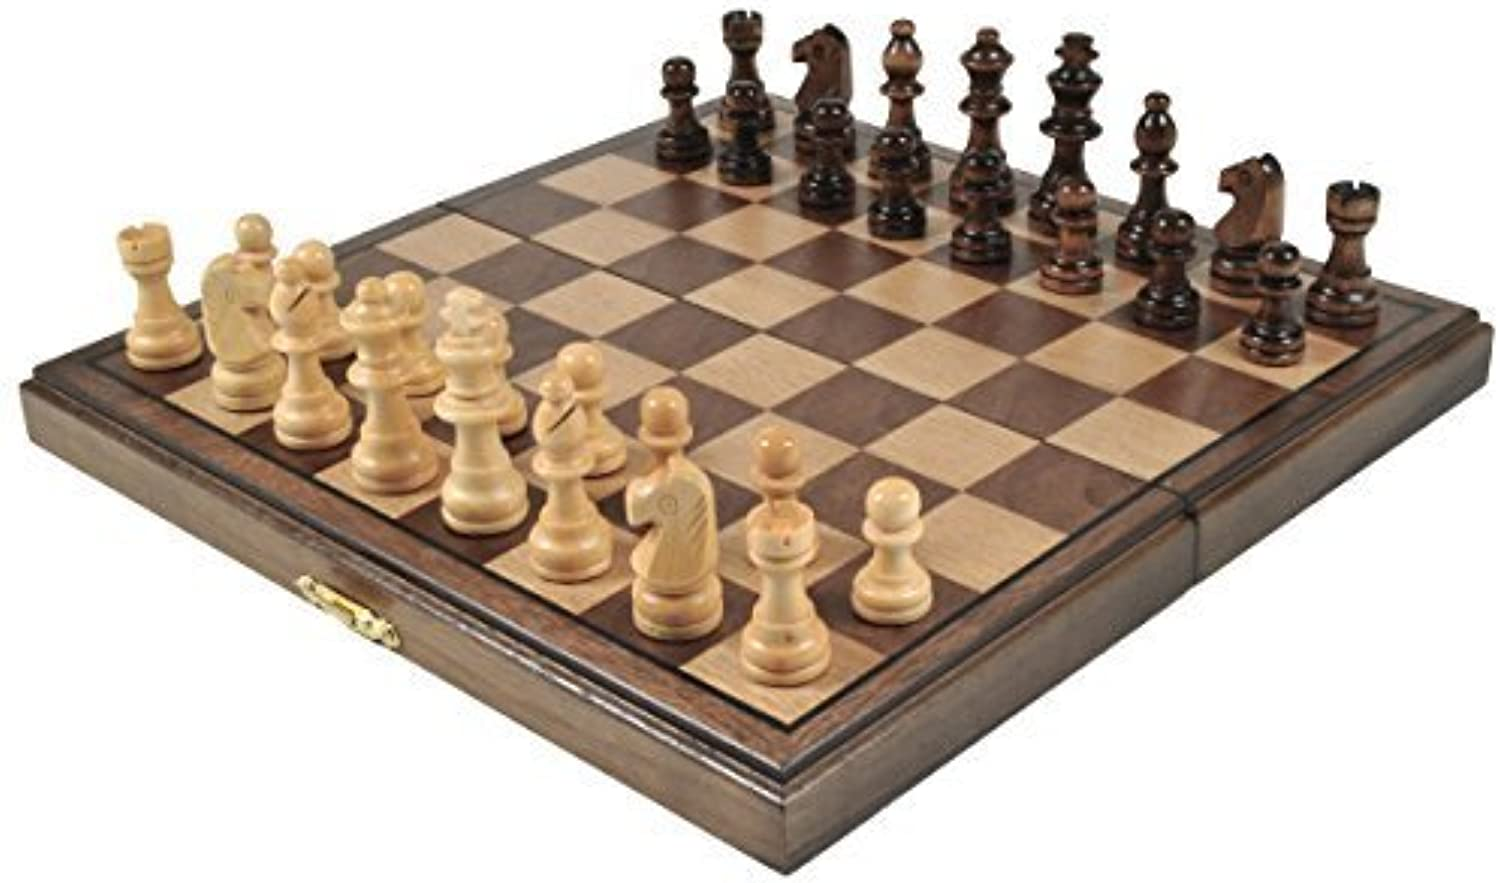 Wooden Magnetic Chess Set – 10.75 inches x 10.75 inches